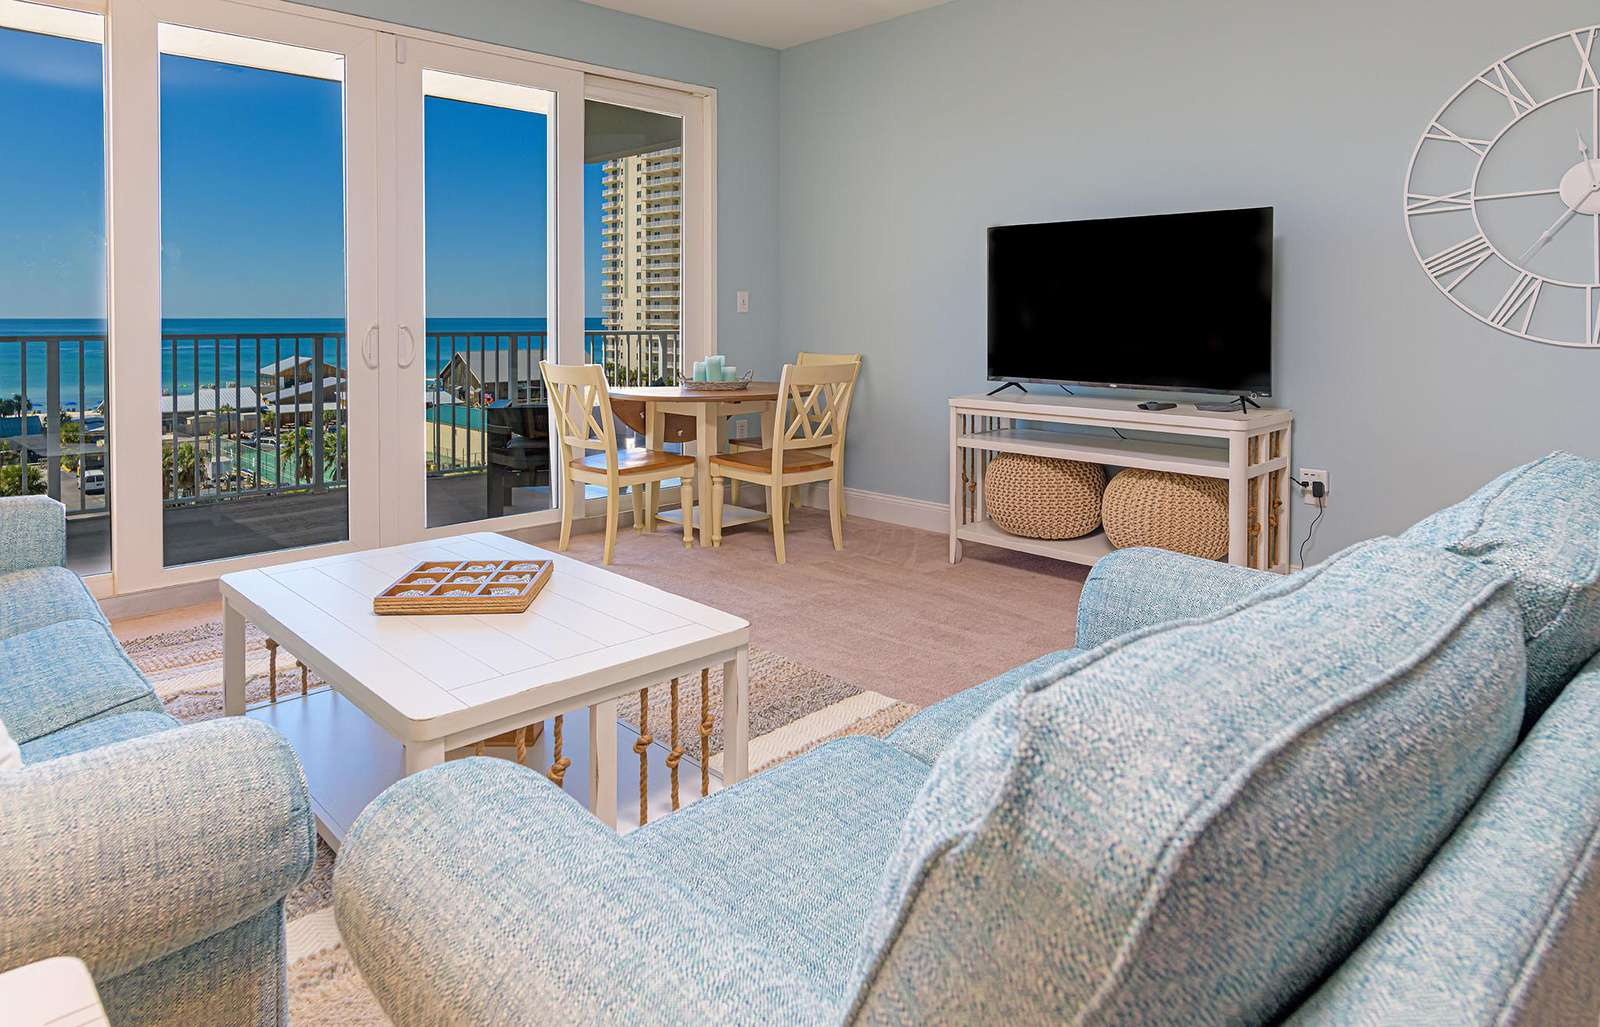 The living area provides beach views, cable tv and more!